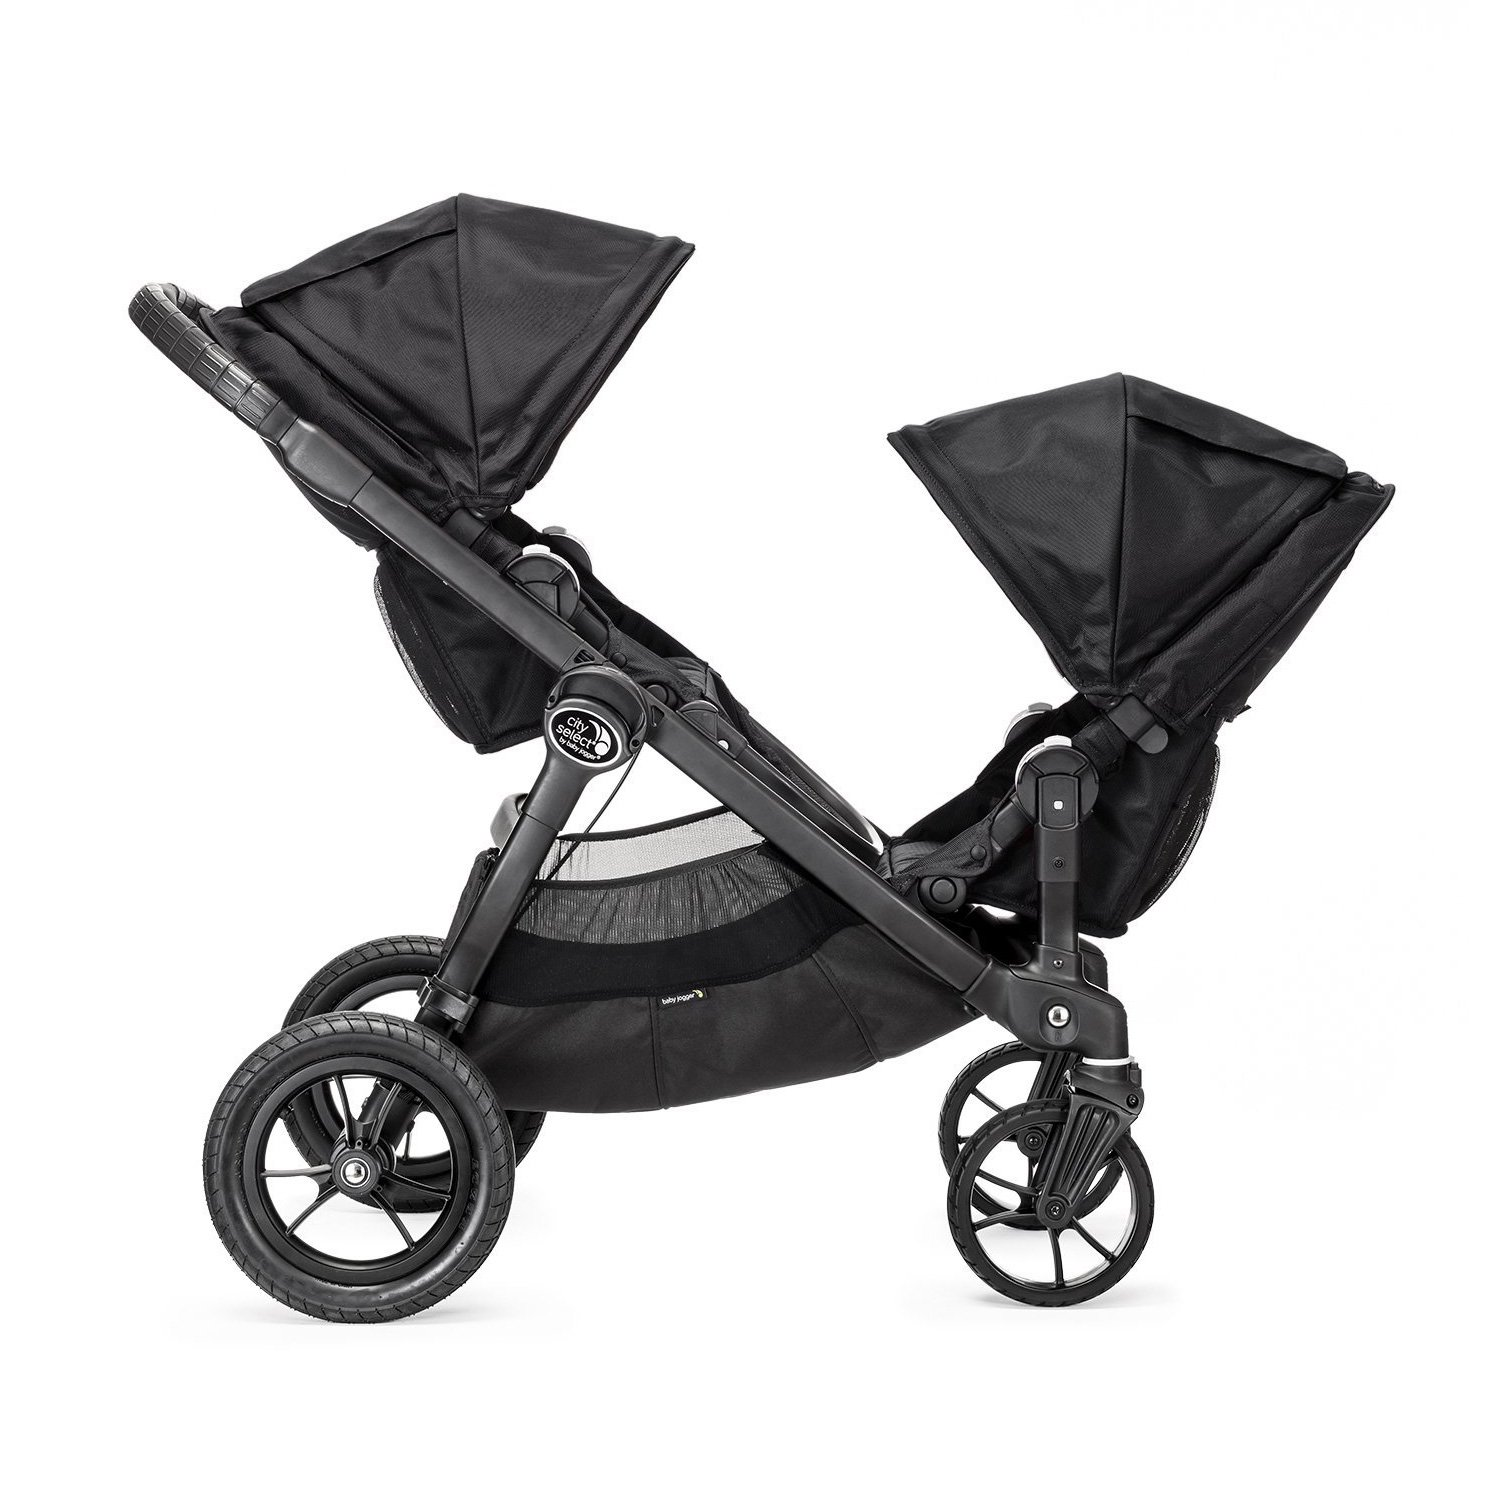 Baby Jogger City Select Second Seat Kit, Black by Baby Jogger (Image #4)